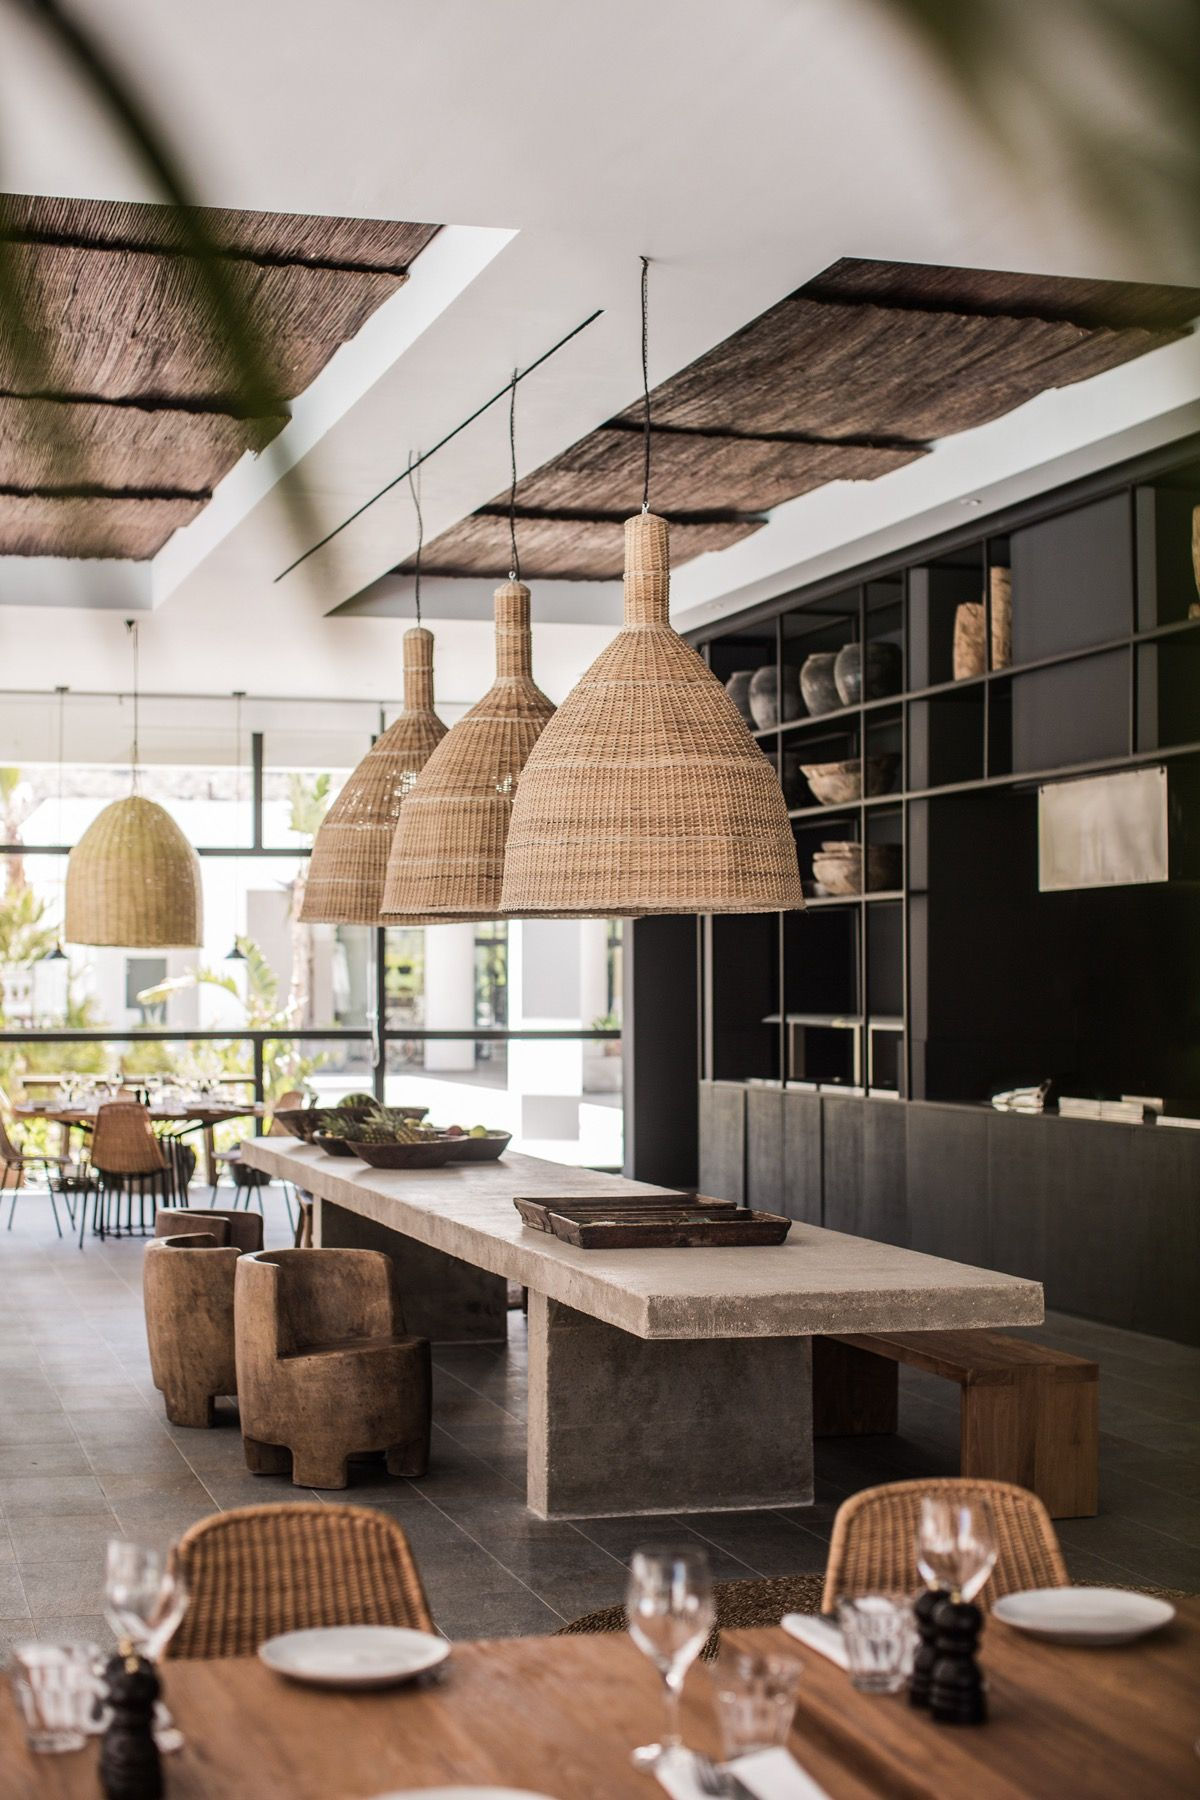 Boutique Hotel With Nomadic Style Decor Casa Cook Hotel Casa Cook Haus Design